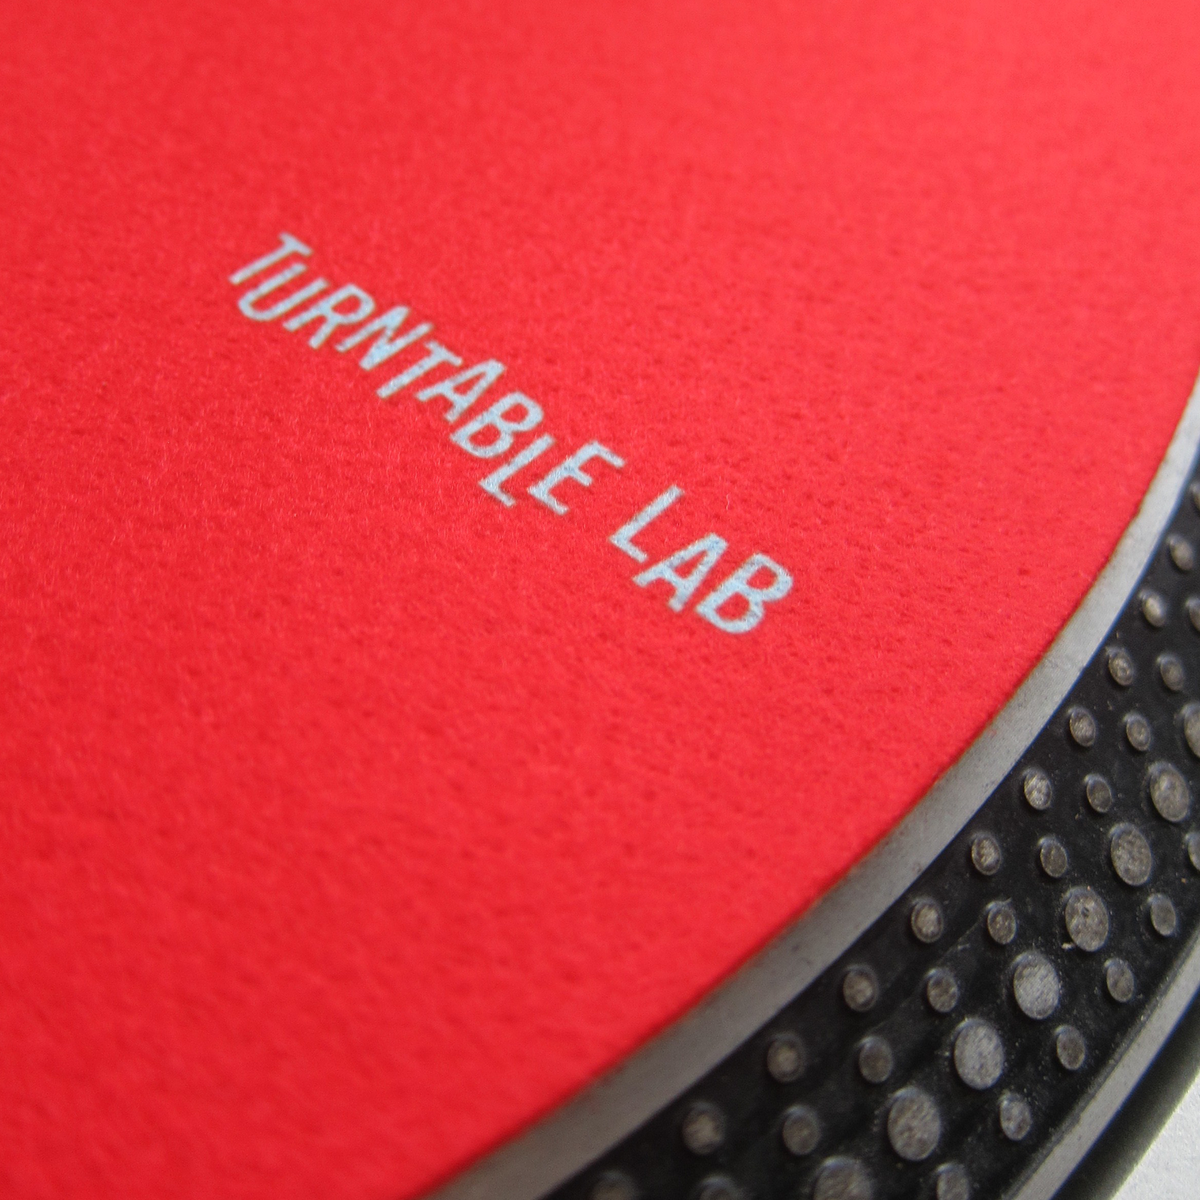 Turntable Lab: Supersoft Slipmats Record Mats - Red